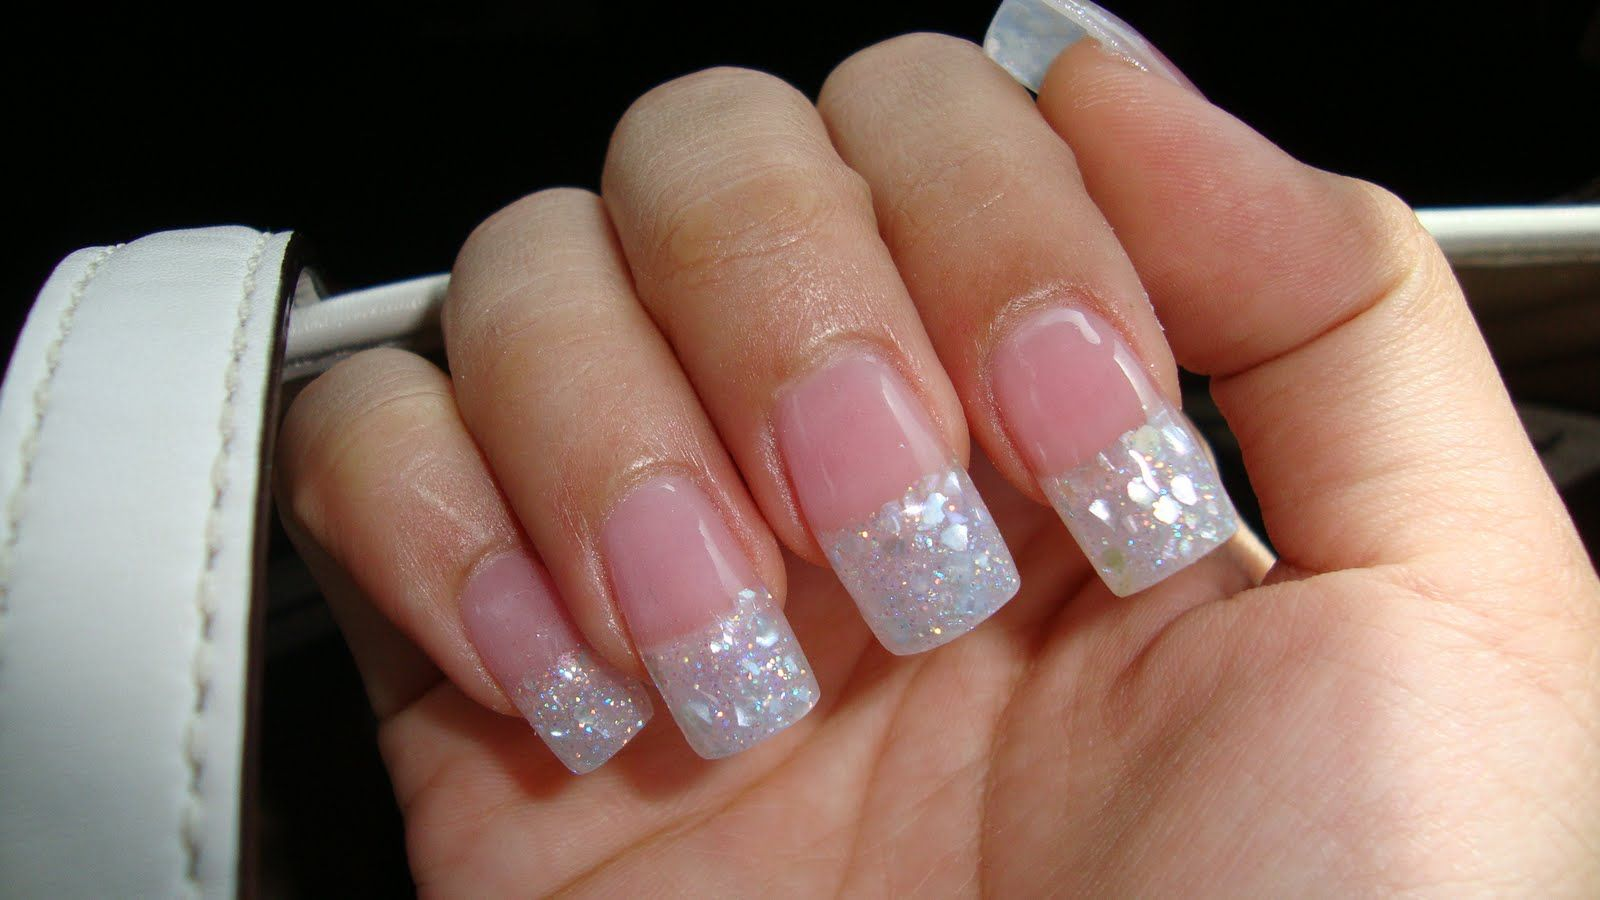 gel nails designs | adore manicures especially if it means long